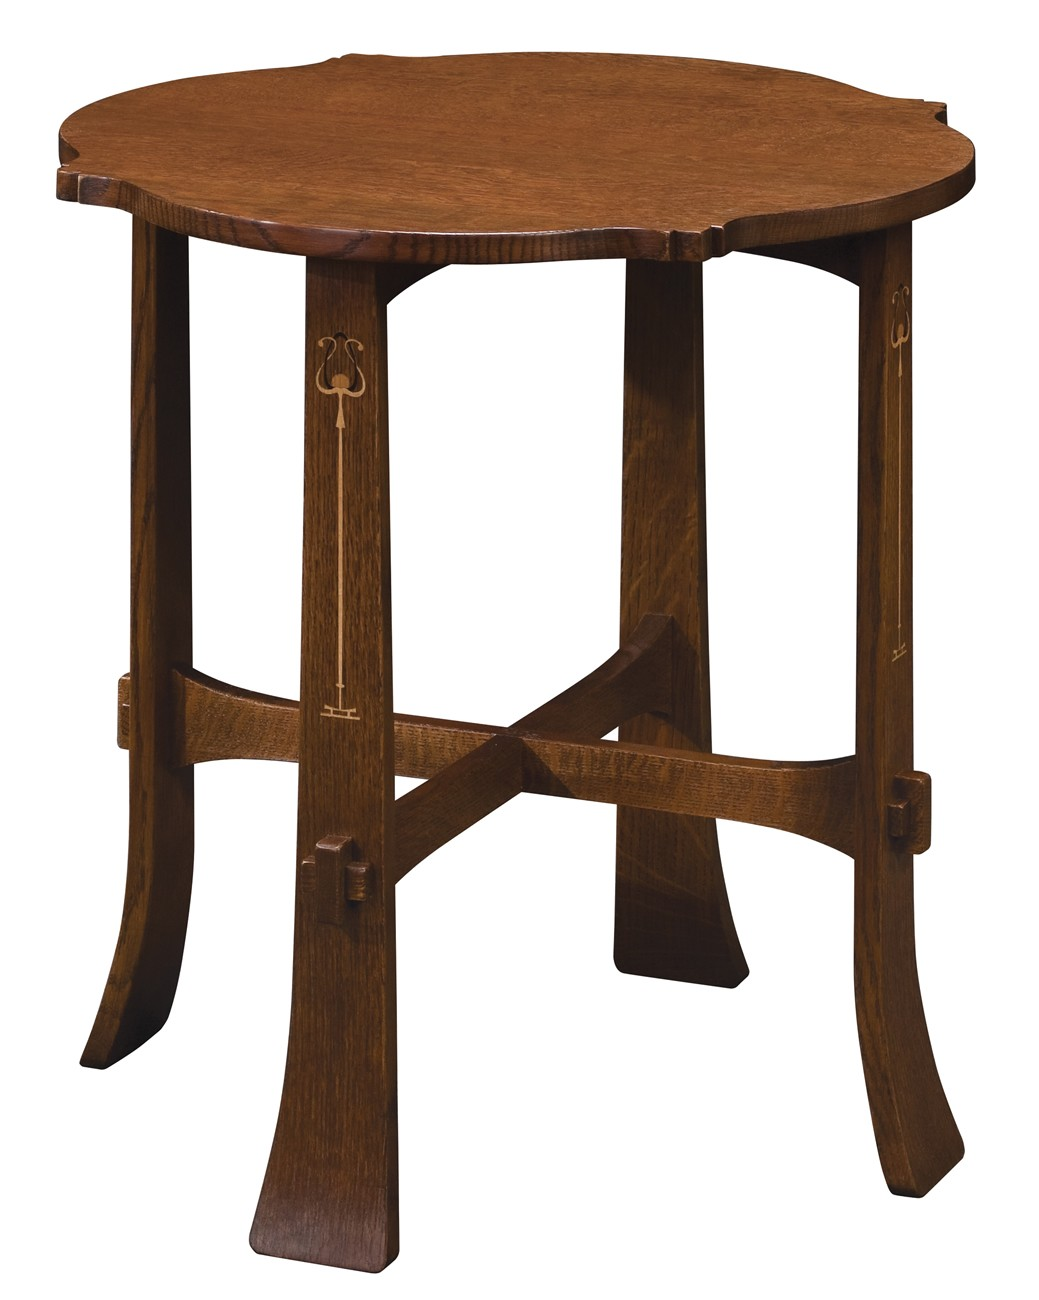 Harvey Ellis Tea Table Centennial Oak